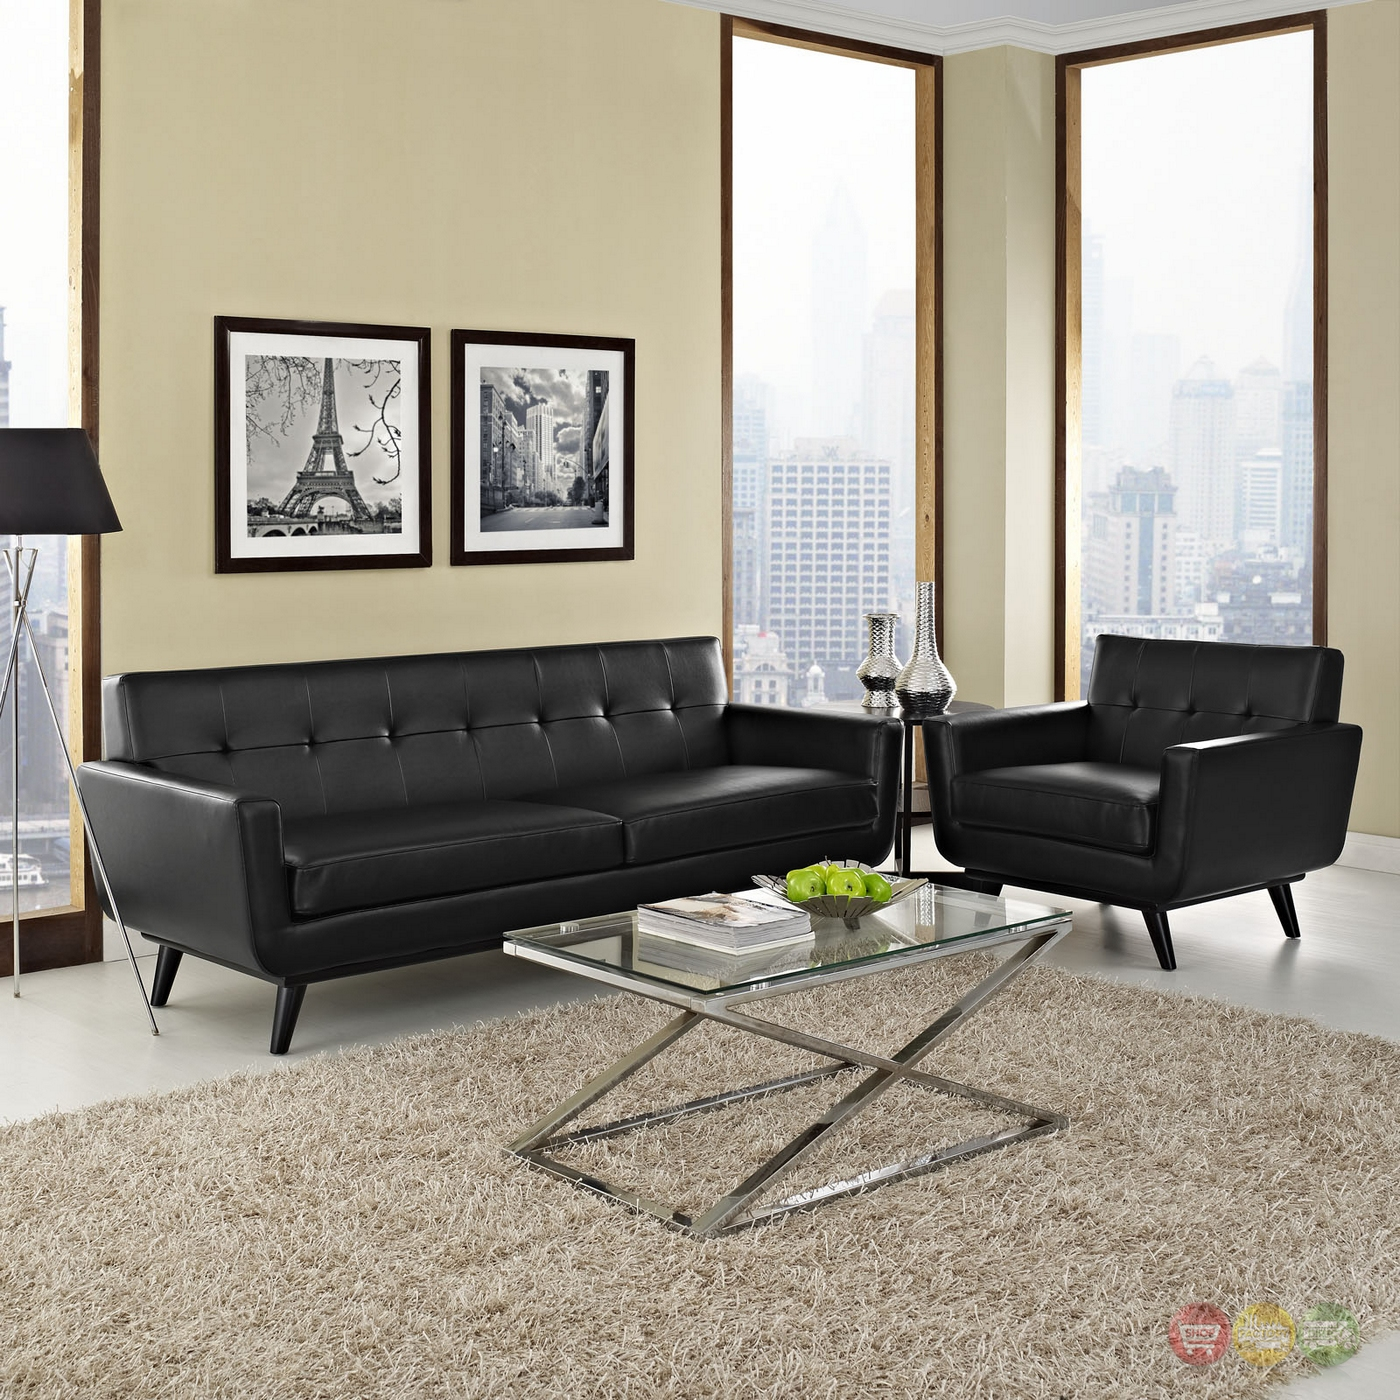 715l black and white leather contemporary living room mid century modern engage 2pc button tufted leather living room set black